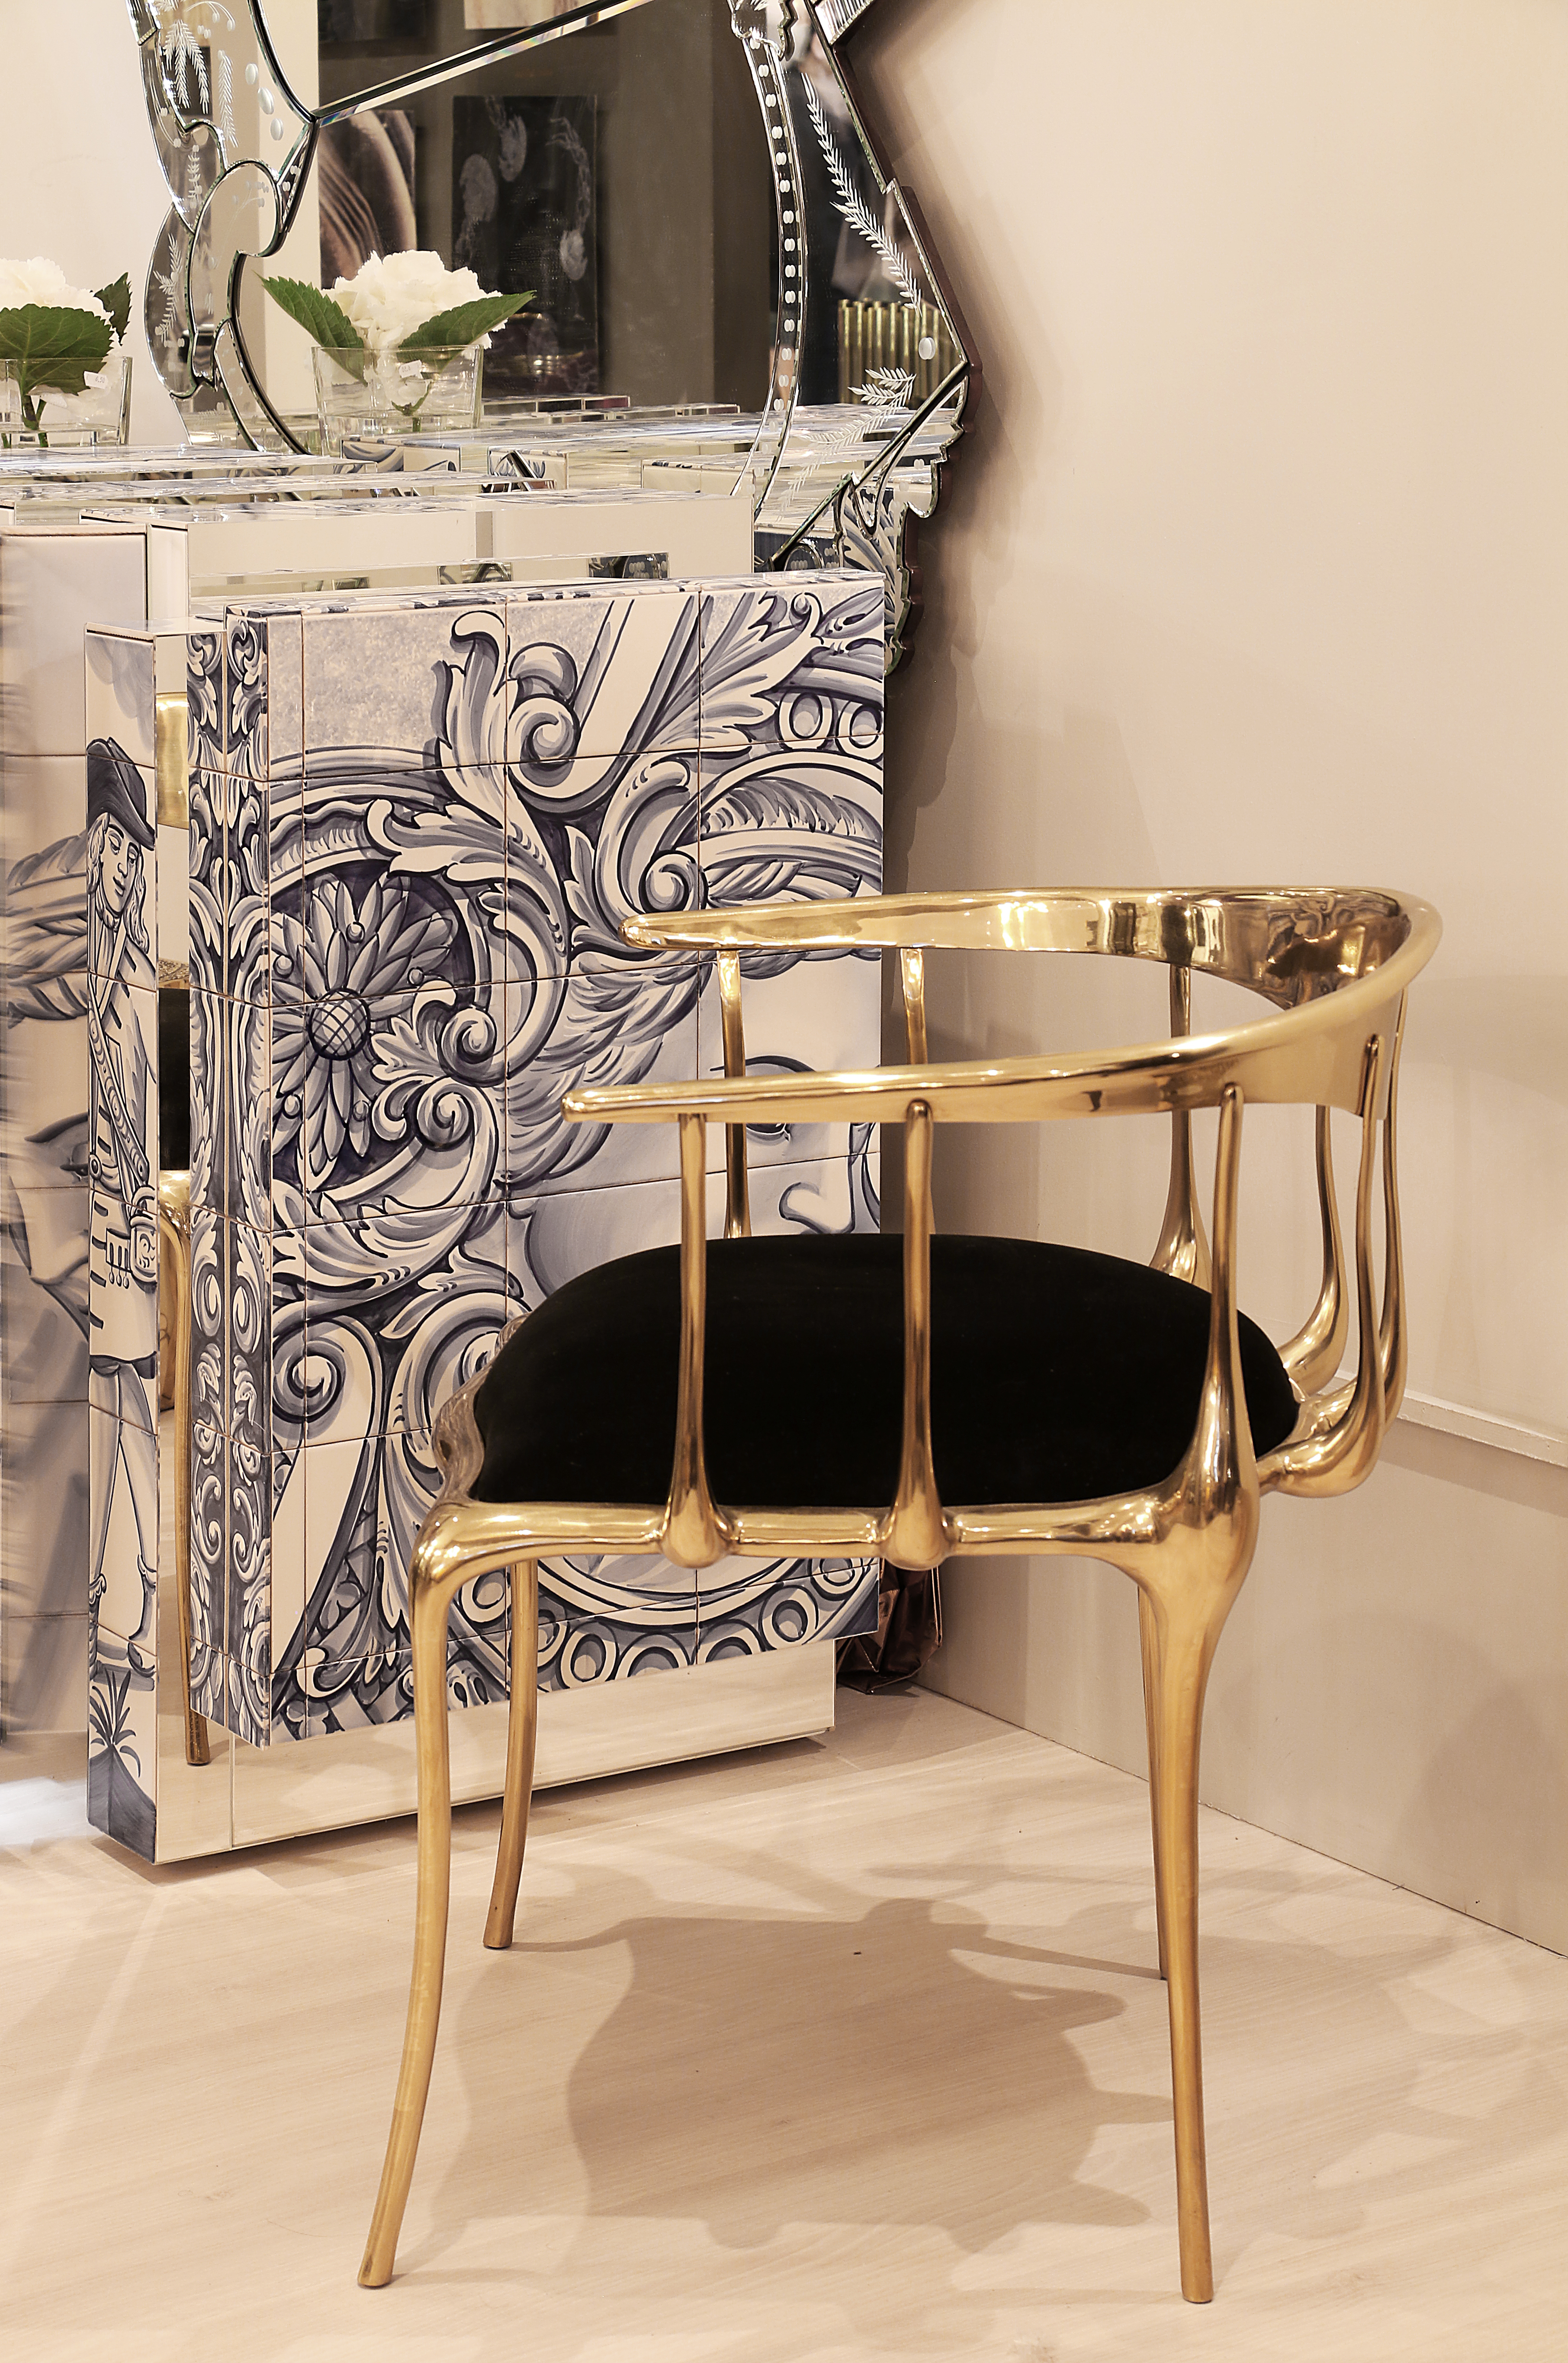 ISaloni 2017 Get to Know the Exclusive Design of Boca Do Lobo isaloni 2017 ISaloni 2017 Get to Know the Exclusive Design of Boca Do Lobo ISaloni 2017 Get to Know the Exclusive Design of Boca Do Lobo 13